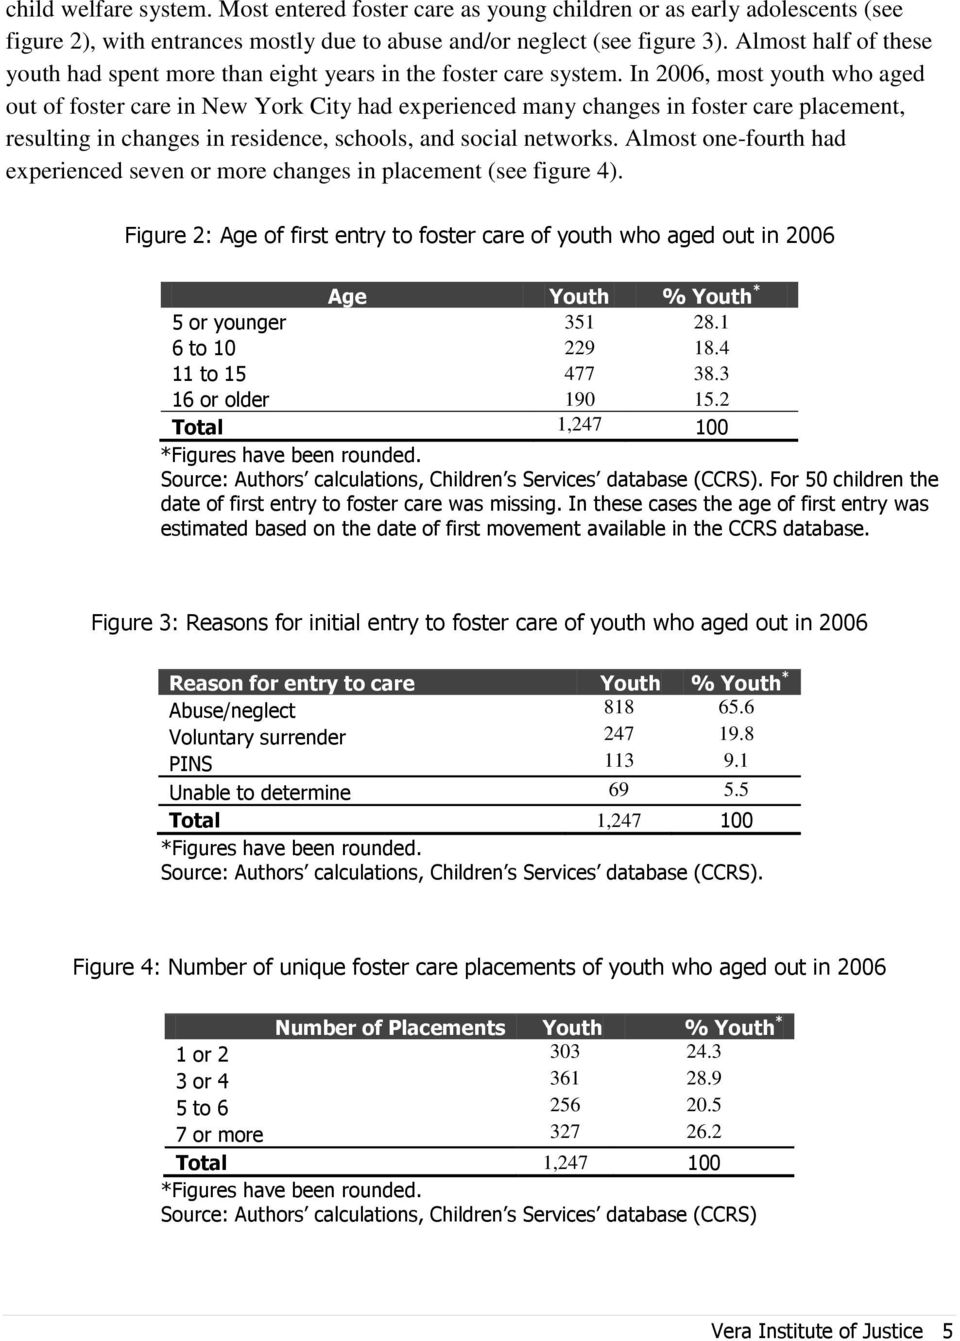 In 2006, most youth who aged out of foster care in New York City had experienced many changes in foster care placement, resulting in changes in residence, schools, and social networks.